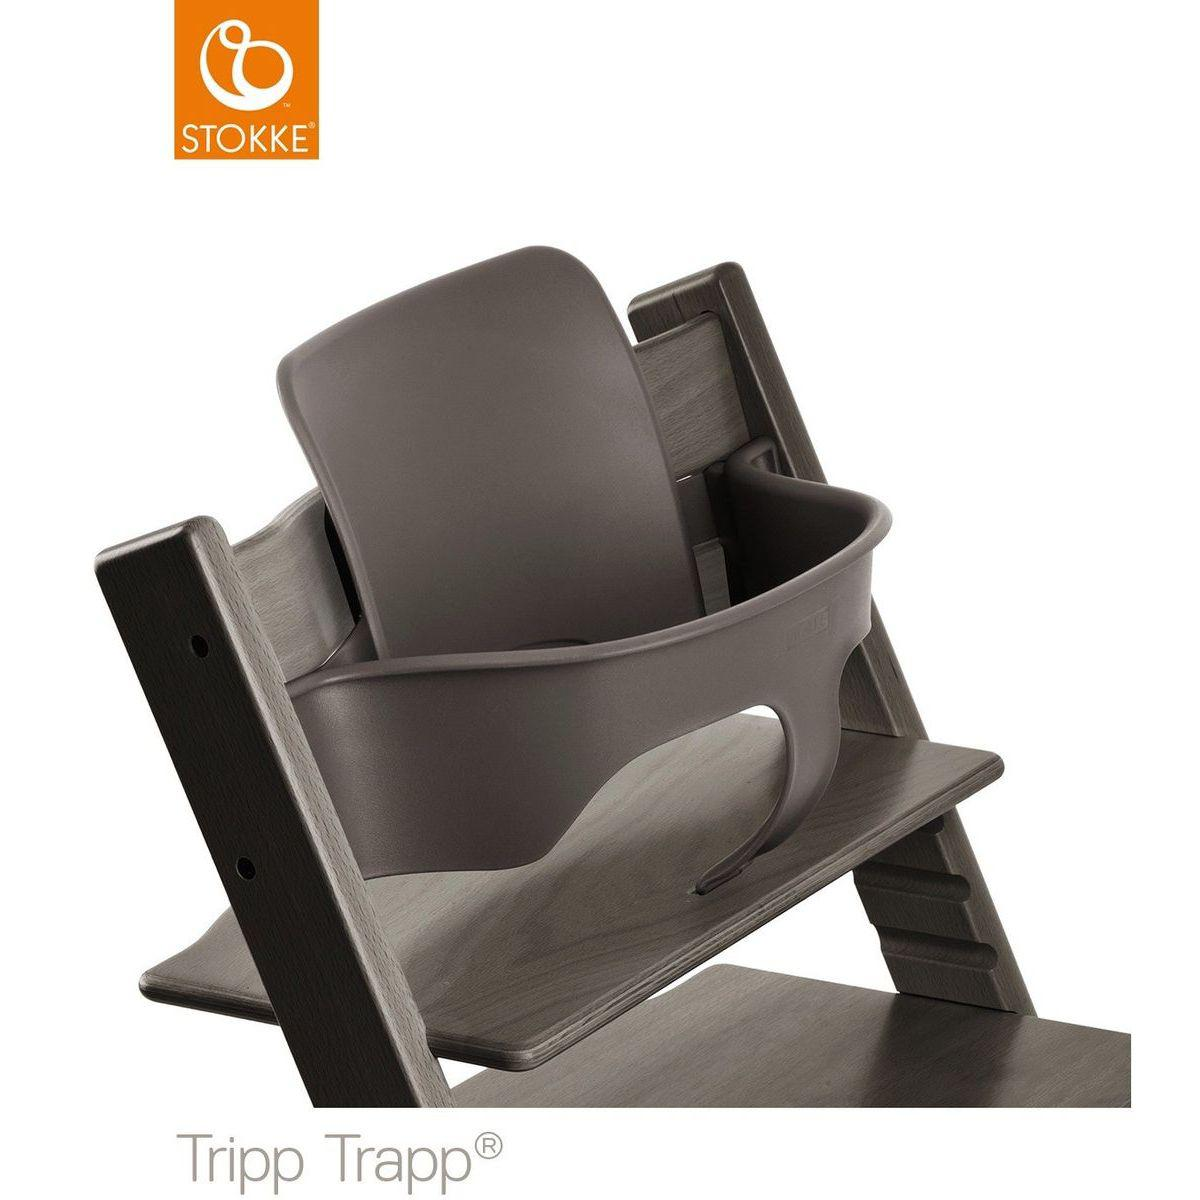 Baby set chaise haute TRIPP TRAPP Stokke gris brume